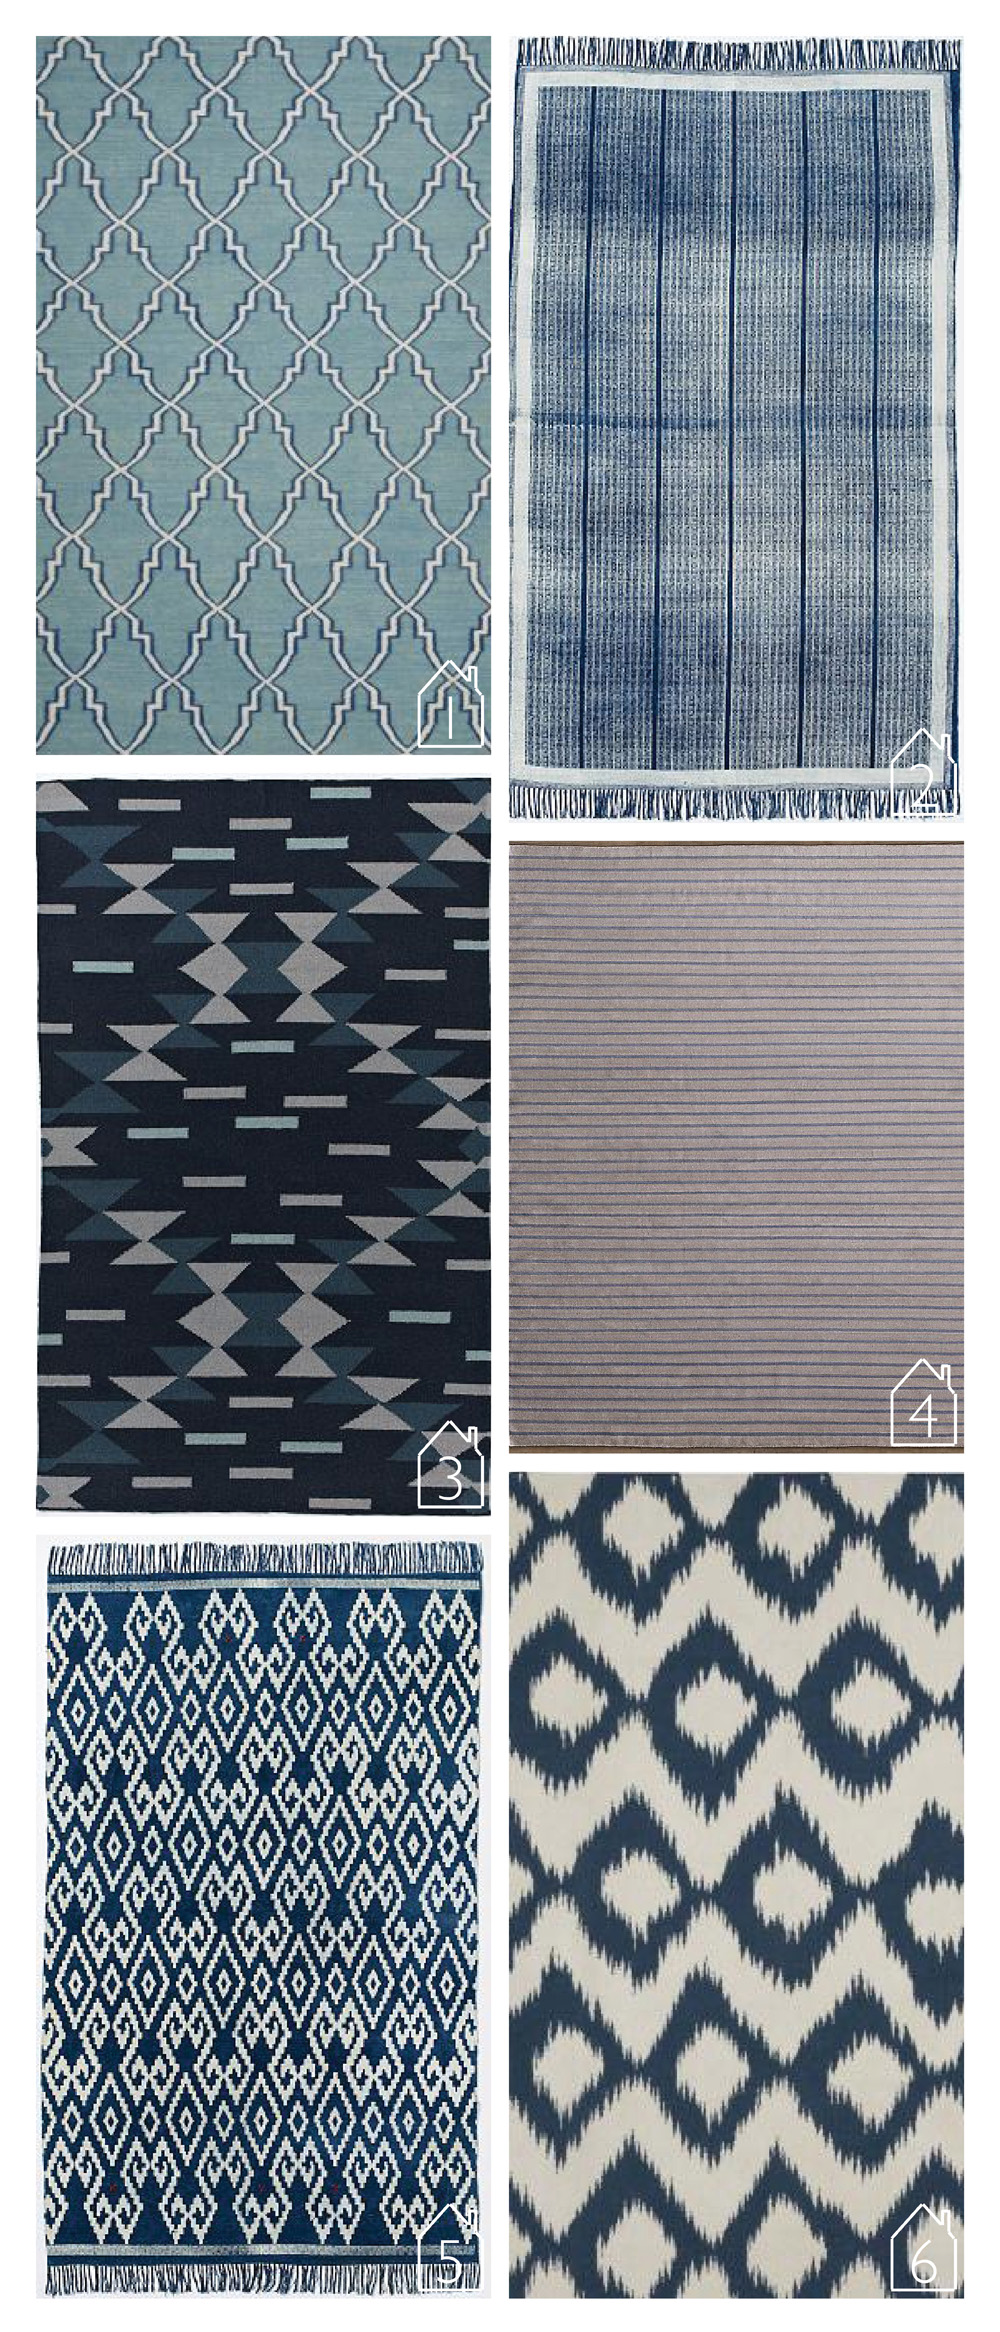 1. Curacao rug, island blue by  Lulu & Georgia   2. Indigo Rail Cotton Dhurrie by  West Elm   3. MIAC Dragonfly Wool Dhurrie by  West Elm   4. Dalton Stripped Flatweave Rug by  RH baby & child   5. Indigo Geo Cotton Dhurrie by  West Elm   6. Zeno Rug, Deep Navy by  Lulu & Georgia